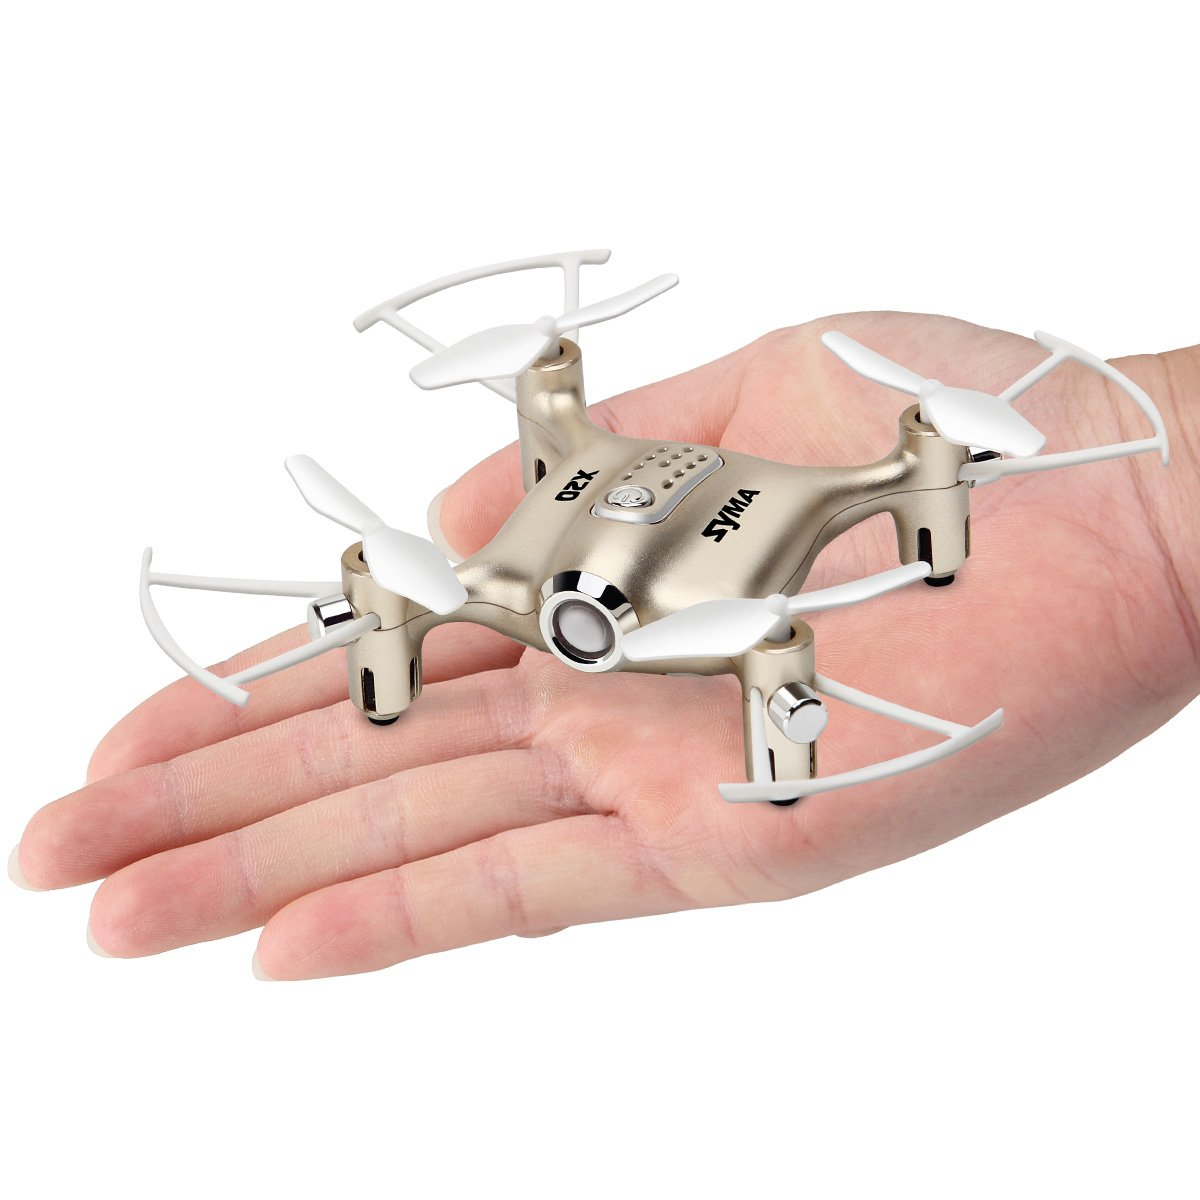 Newest Pocket Headless Quadcopter Altitude